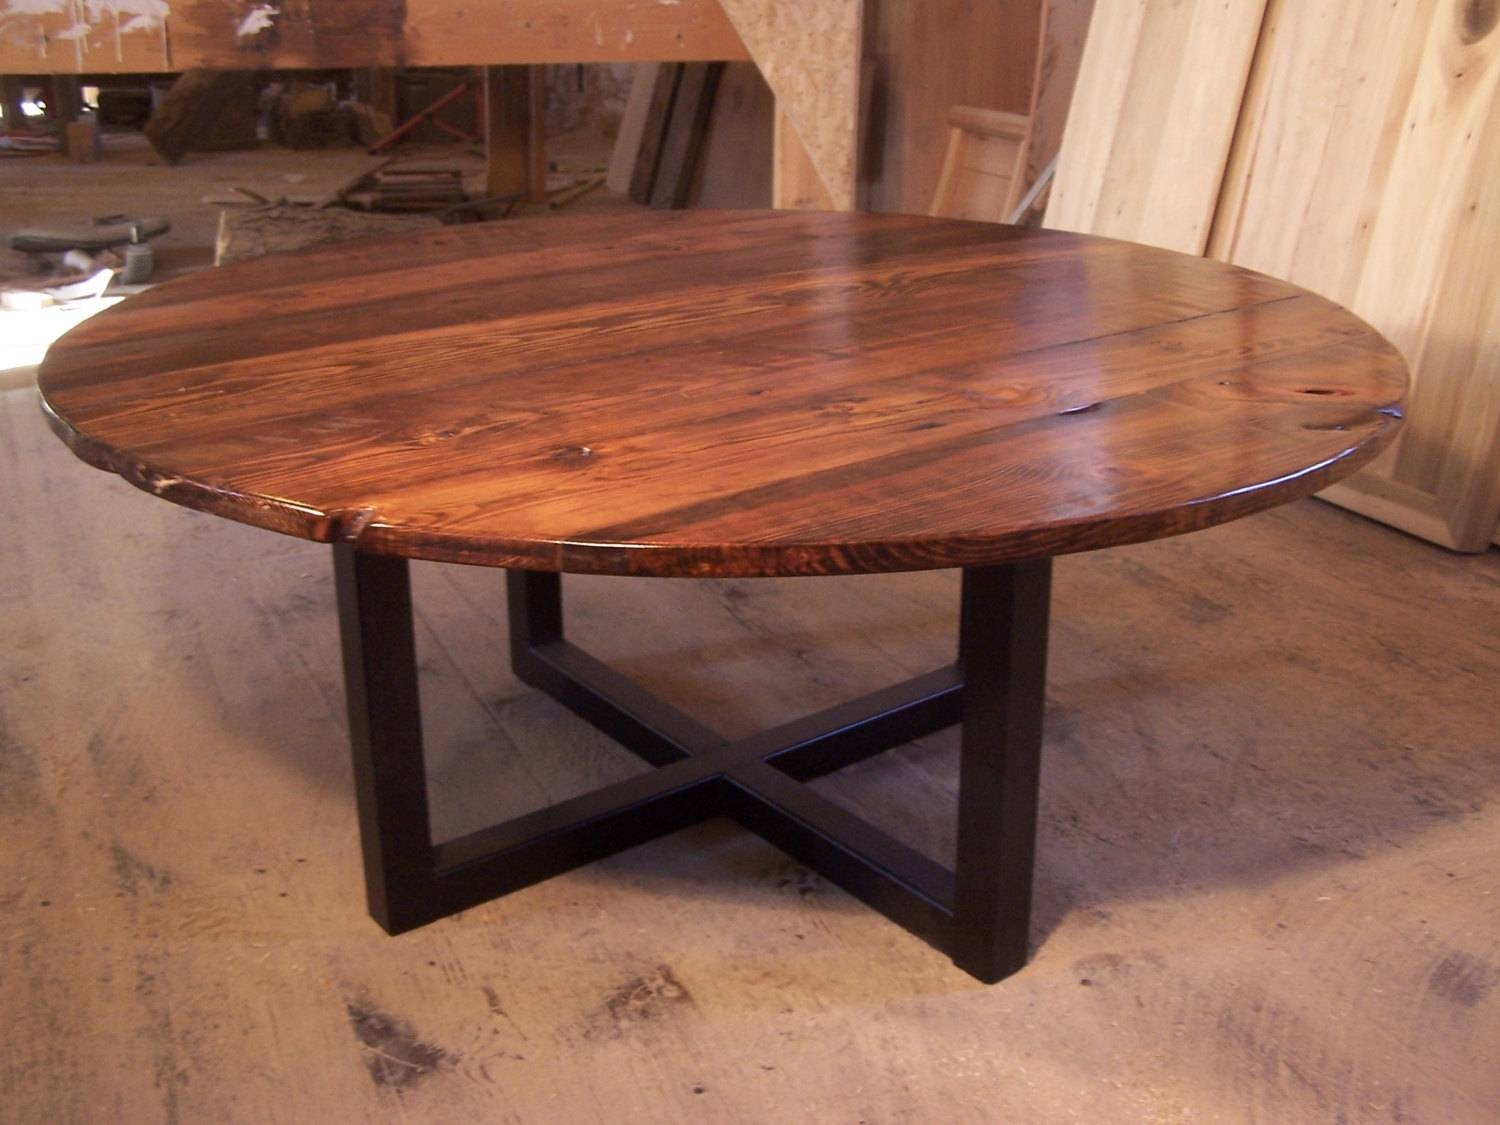 Free Shipping Large Round Coffee Table With Industrial Metal regarding Industrial Round Coffee Tables (Image 5 of 15)